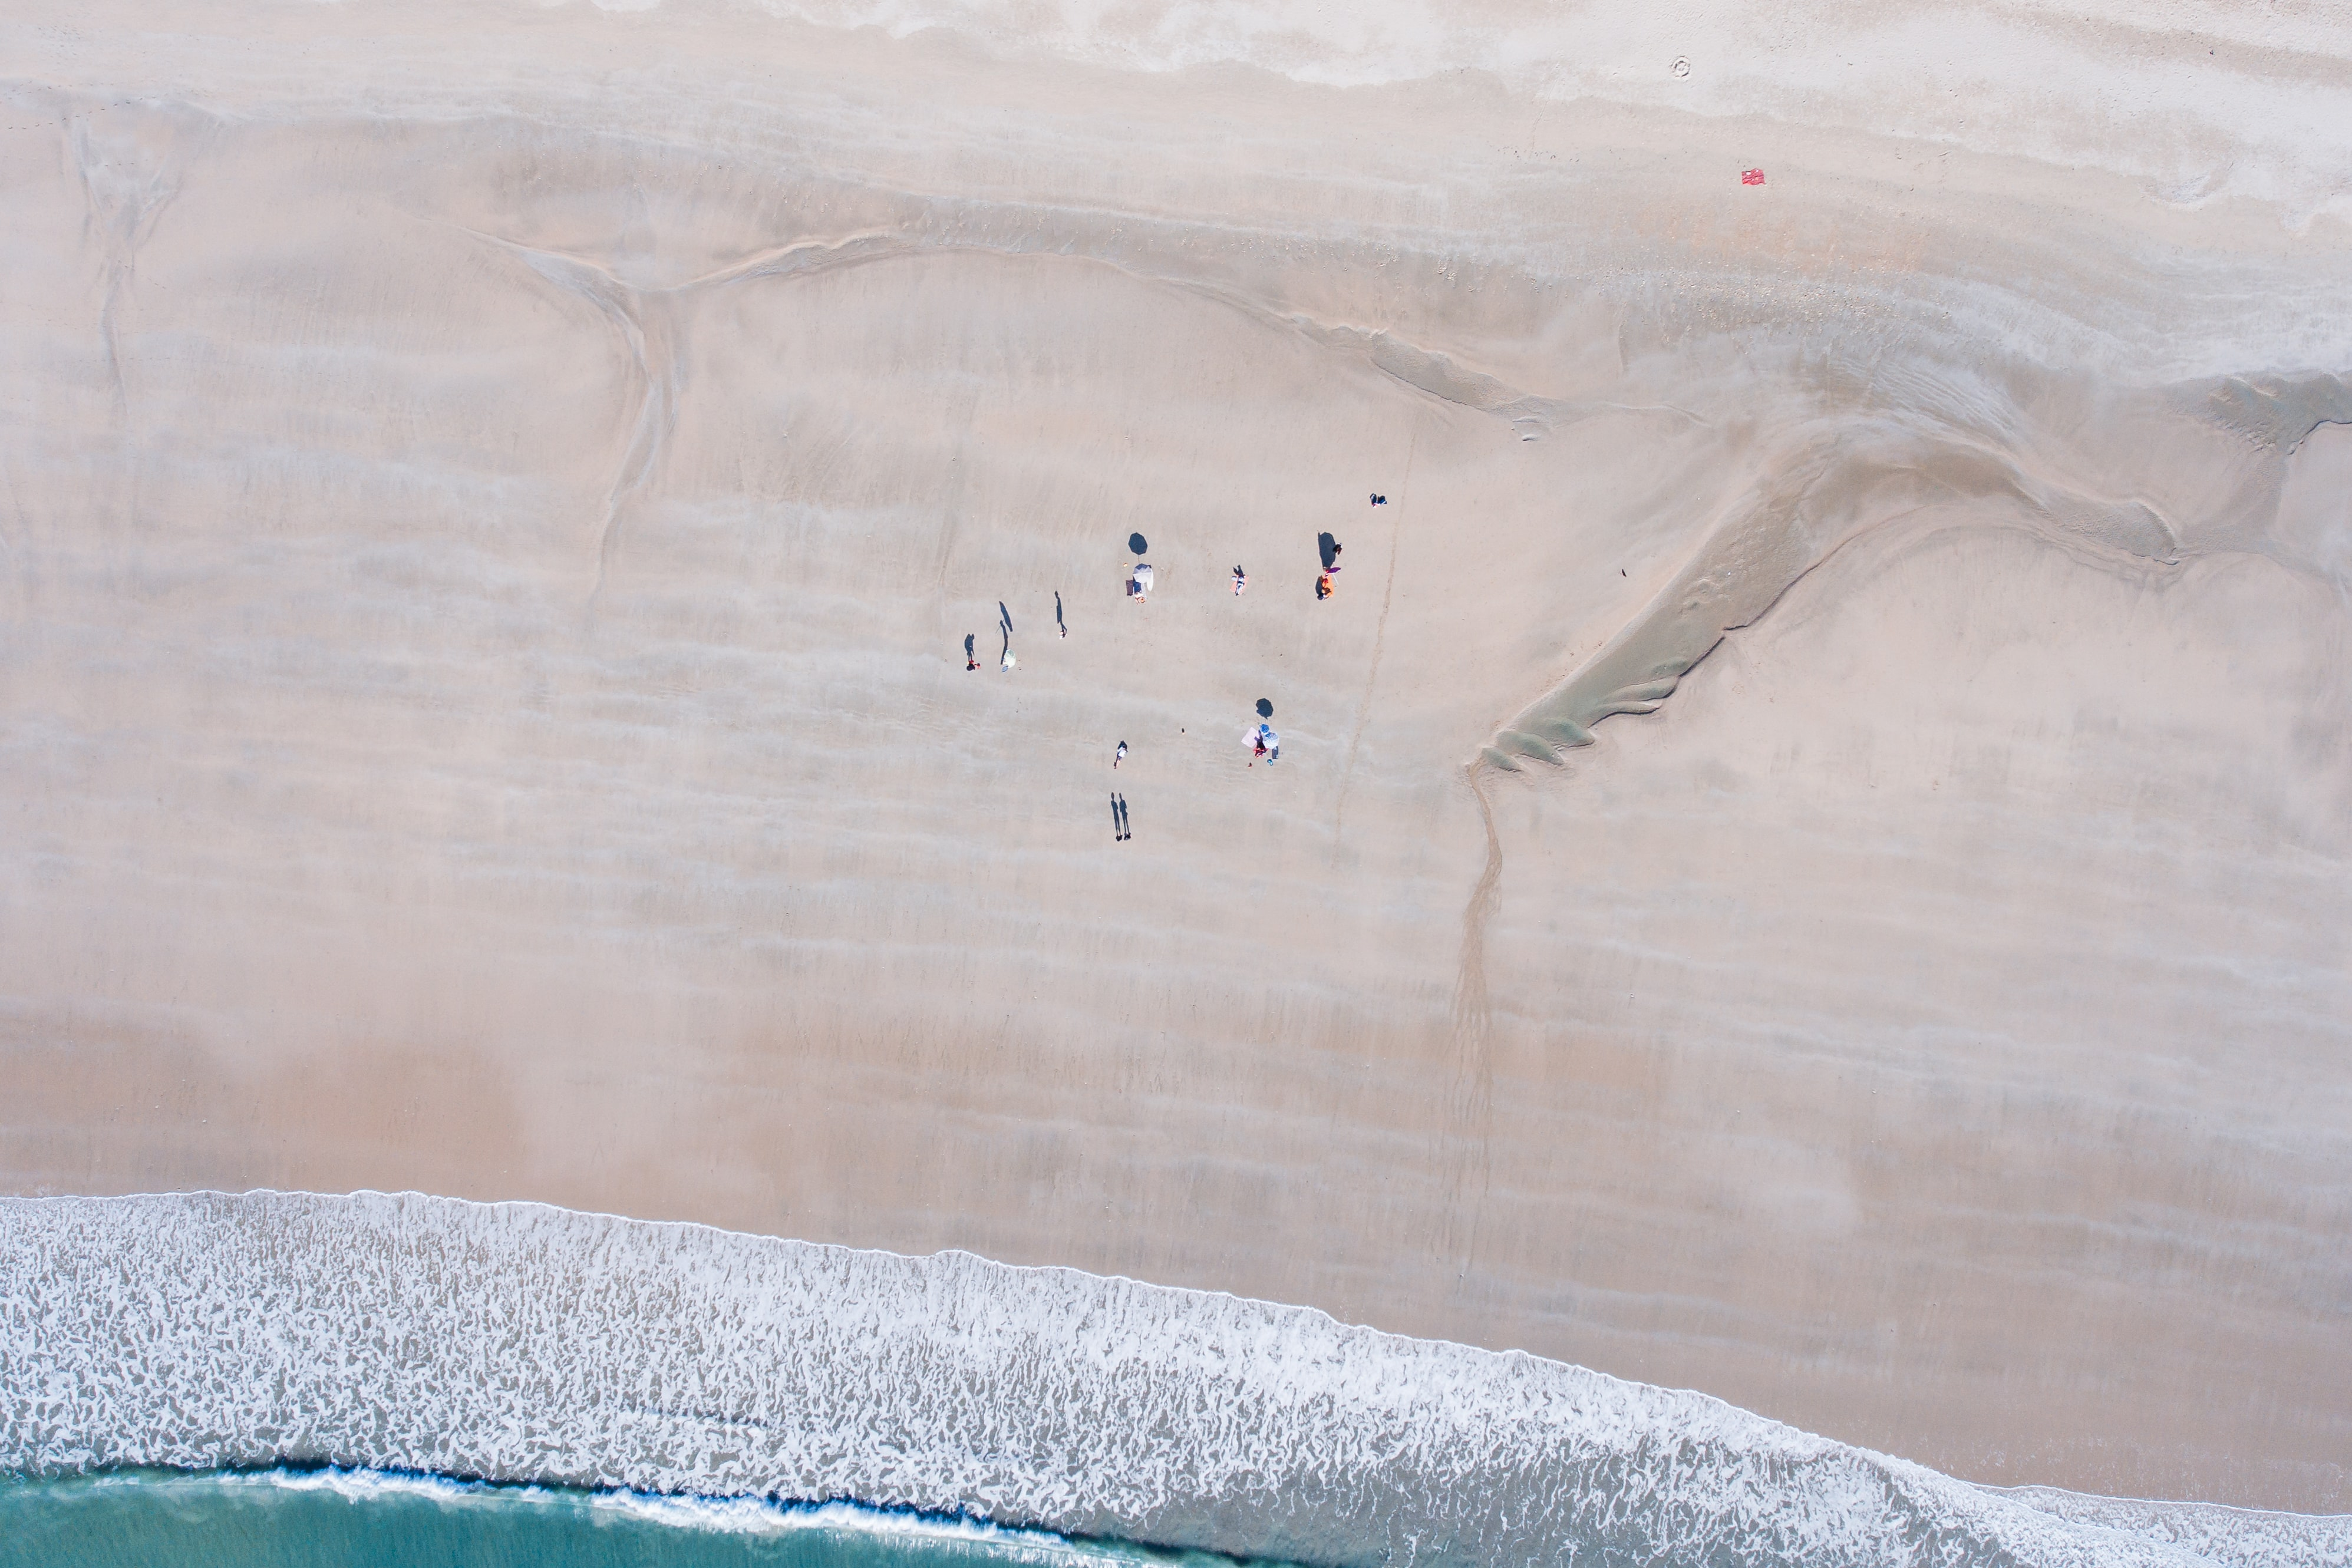 An aerial view of a small group of people on a vast beach